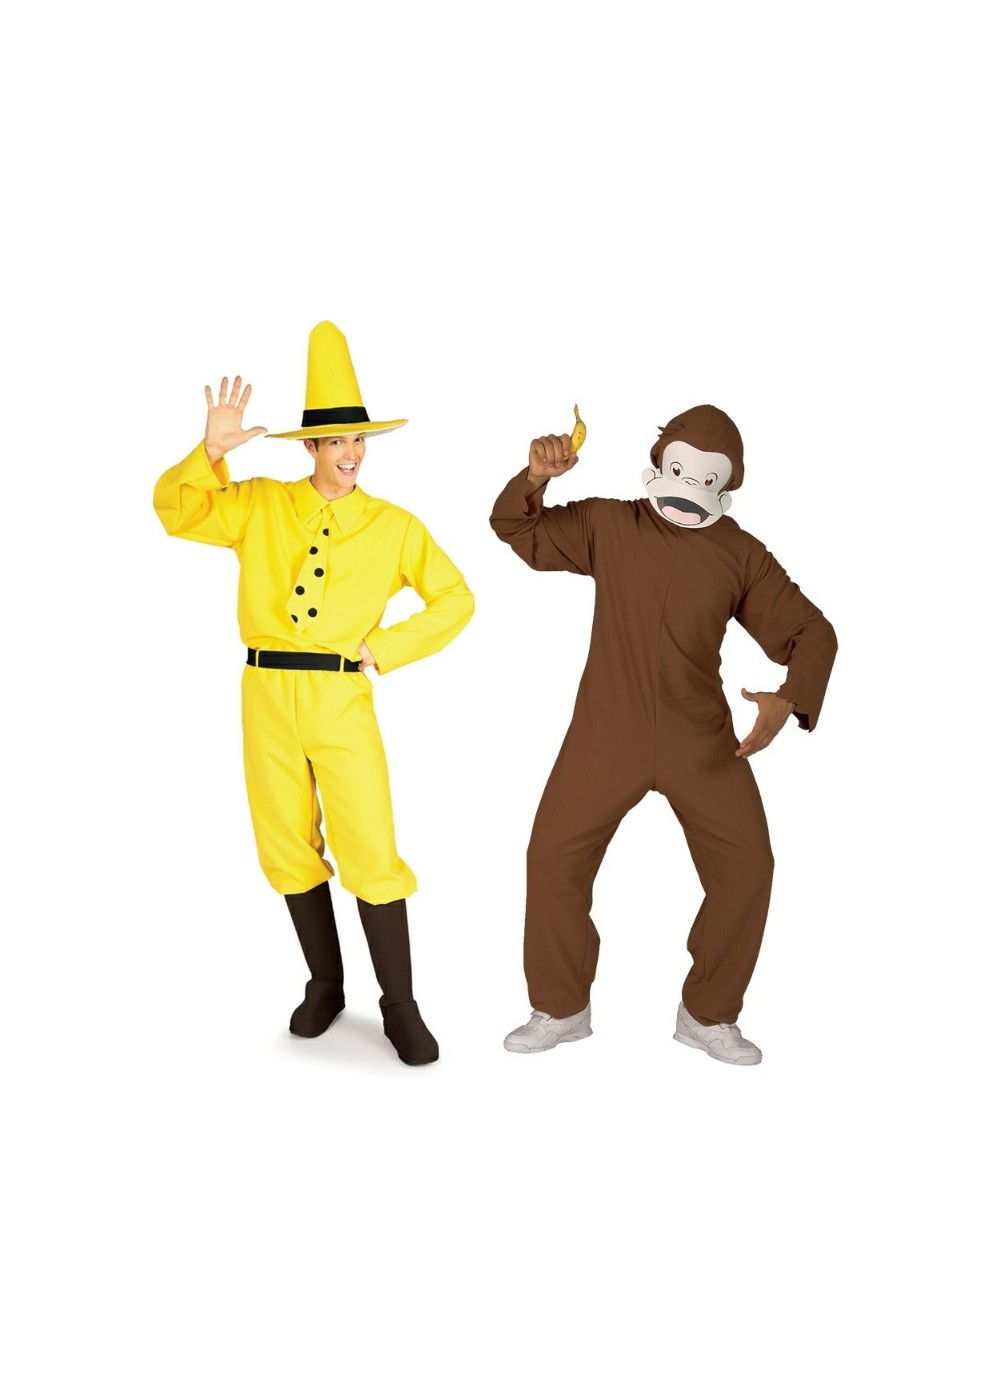 39b466edb41 Curious George Costume Duo - Couples Costume